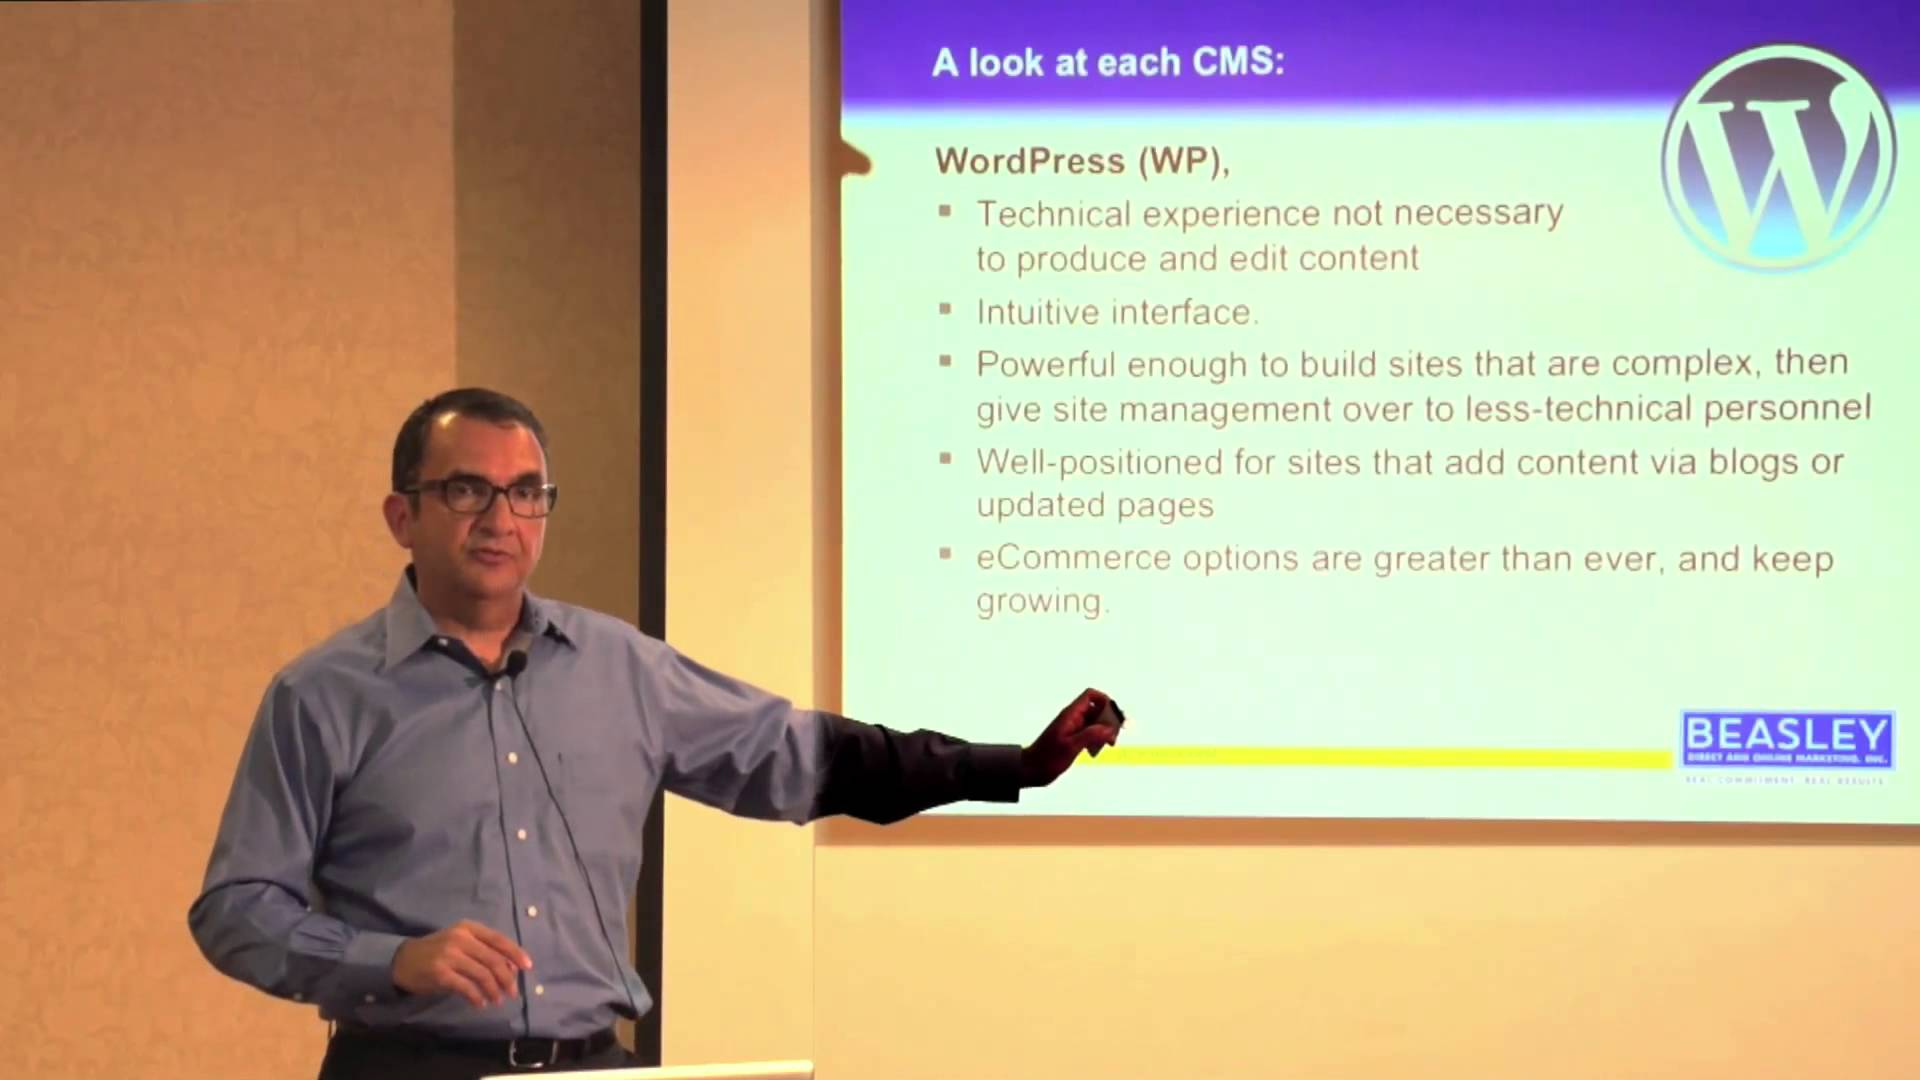 Web CMS Systems Compared, and Why WordPress Is Our Focus